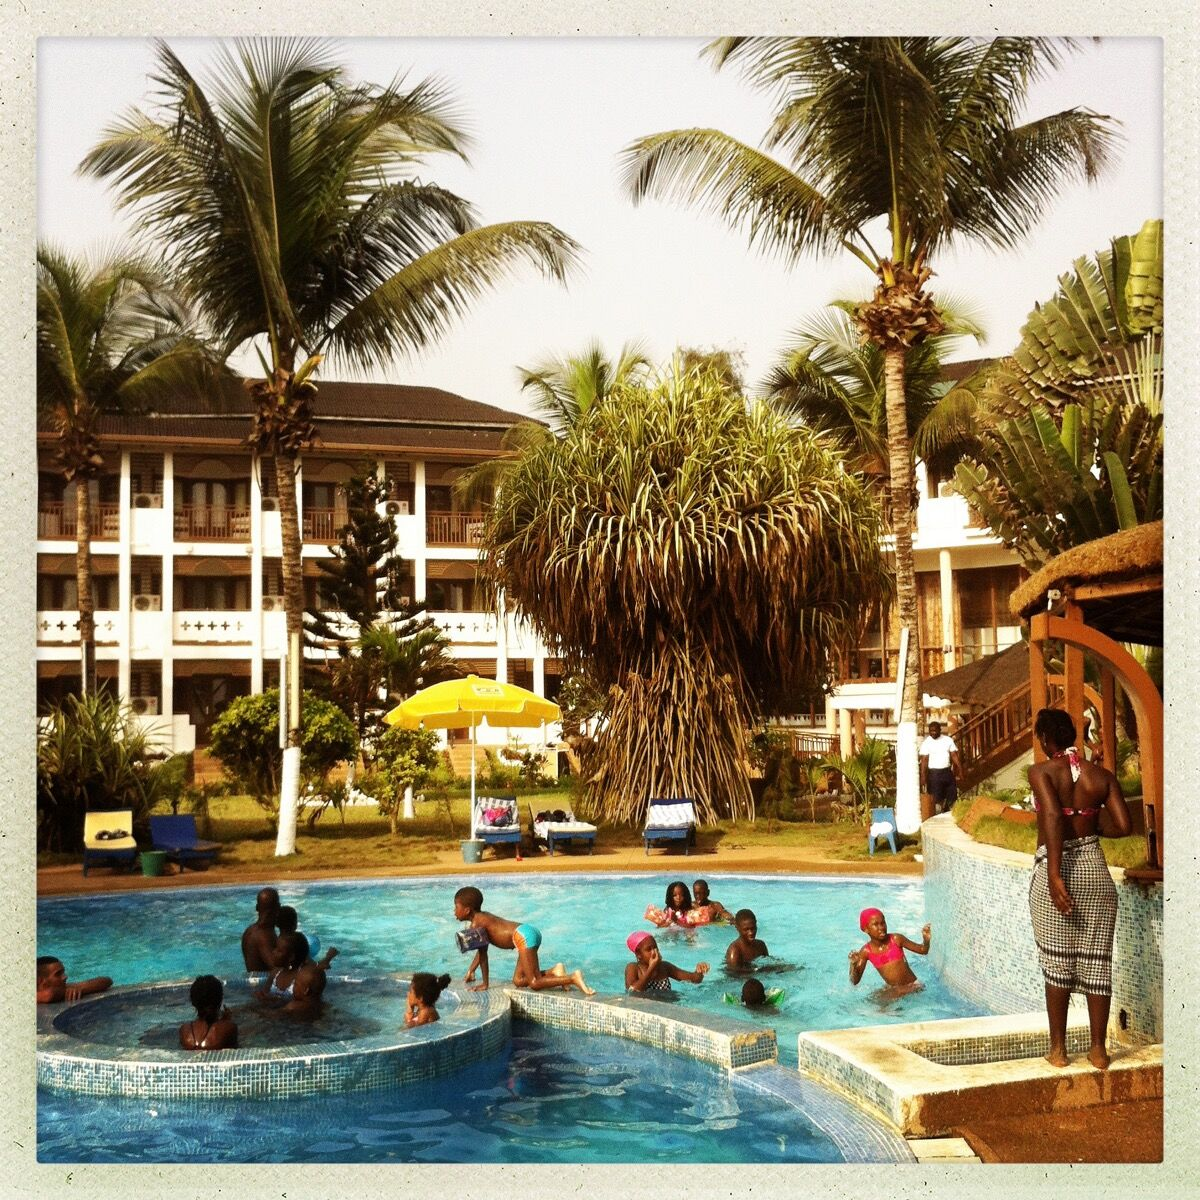 Poolside scene at a hotel in Grand-Bassam, a popular beach community outside of Abidjan, Ivory Coast. Photo by @pdicampo.